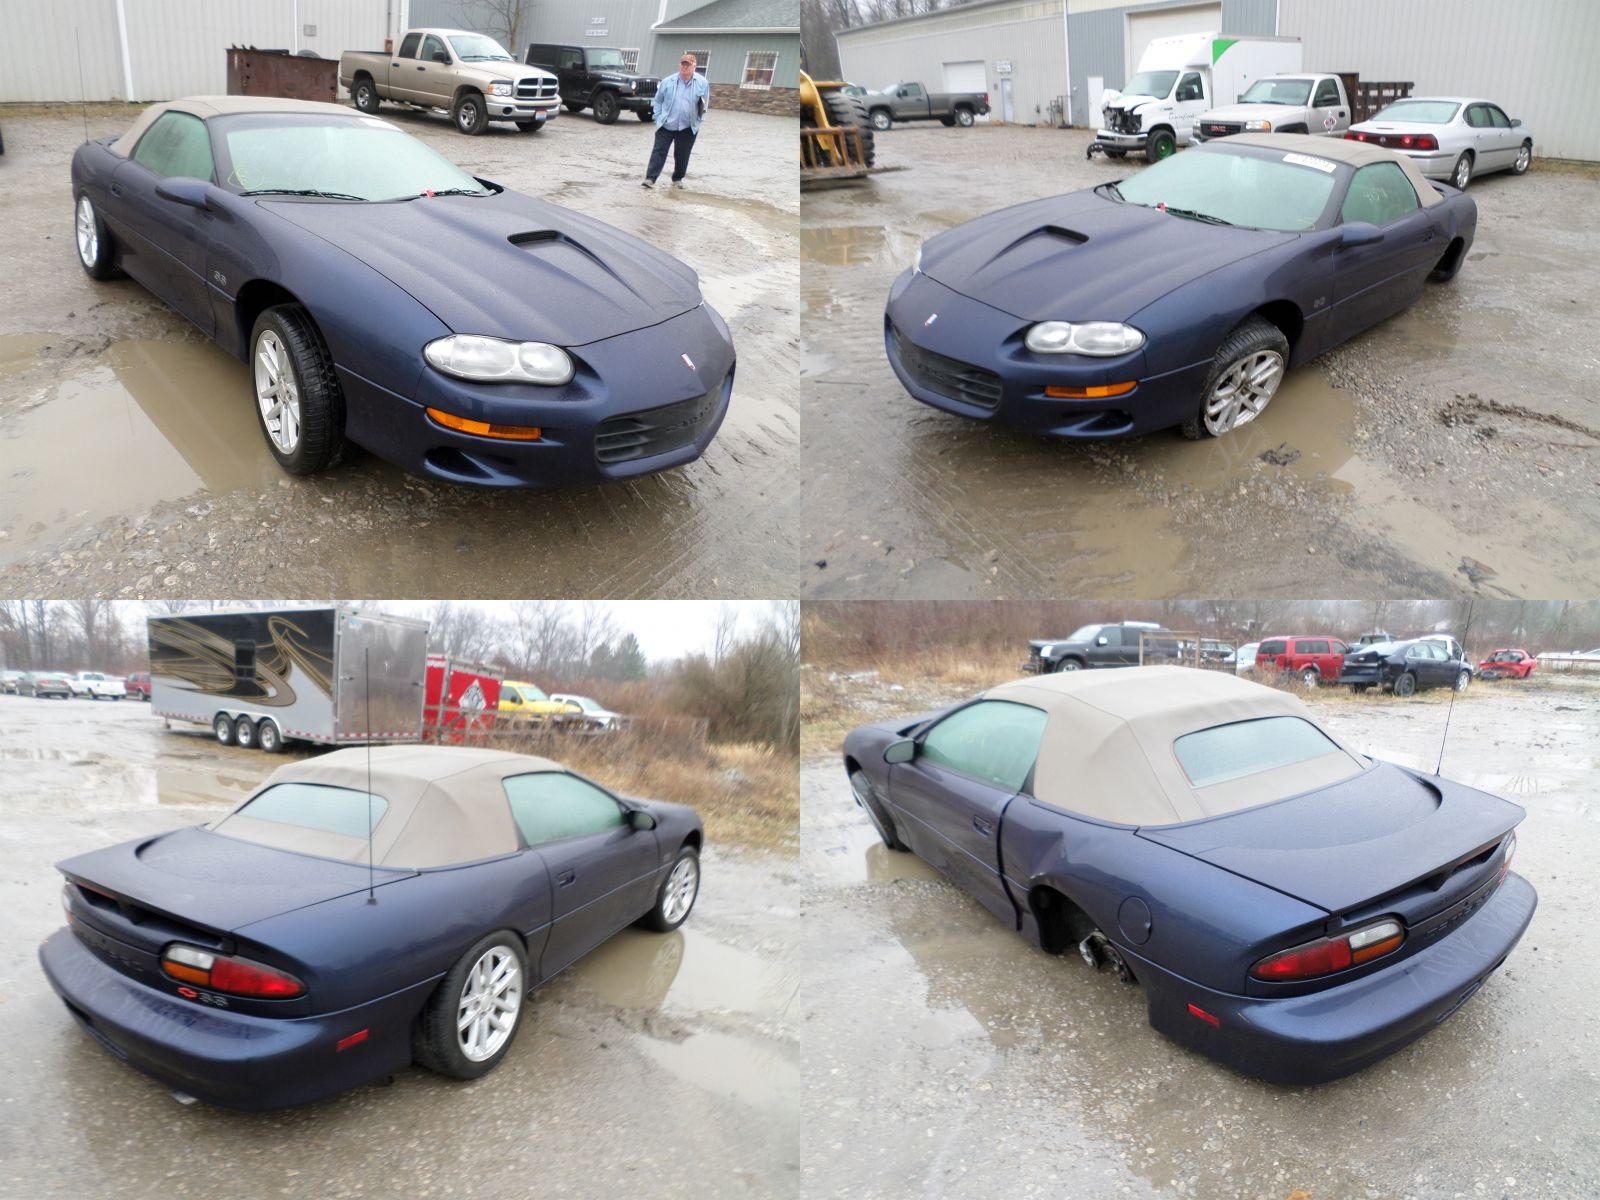 697532 Coolant Flush besides Wiring Diagram For Chevy Malibu 2006 also 696893 Need Help Running Heater furthermore 1998 Camaro Ls1 Automatic Wiring Harness as well Page3. on 1998 camaro engine